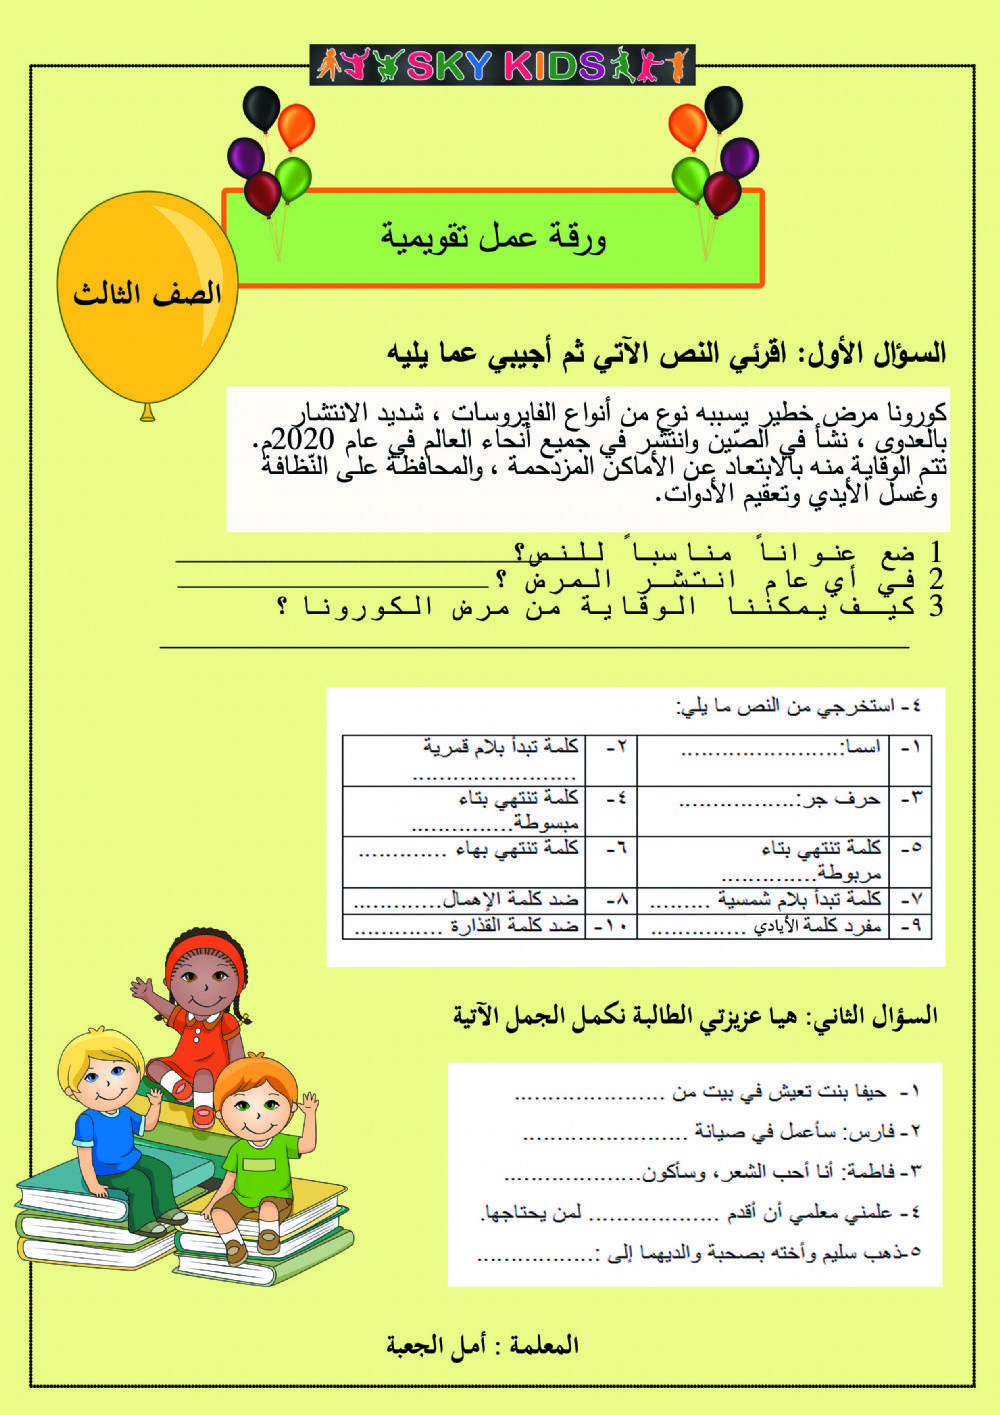 ورقة عمل تقويمية Interactive And Downloadable Worksheet You Can Do The Exercises Online Or Download The Work Learn Arabic Language Learning Arabic Interactive